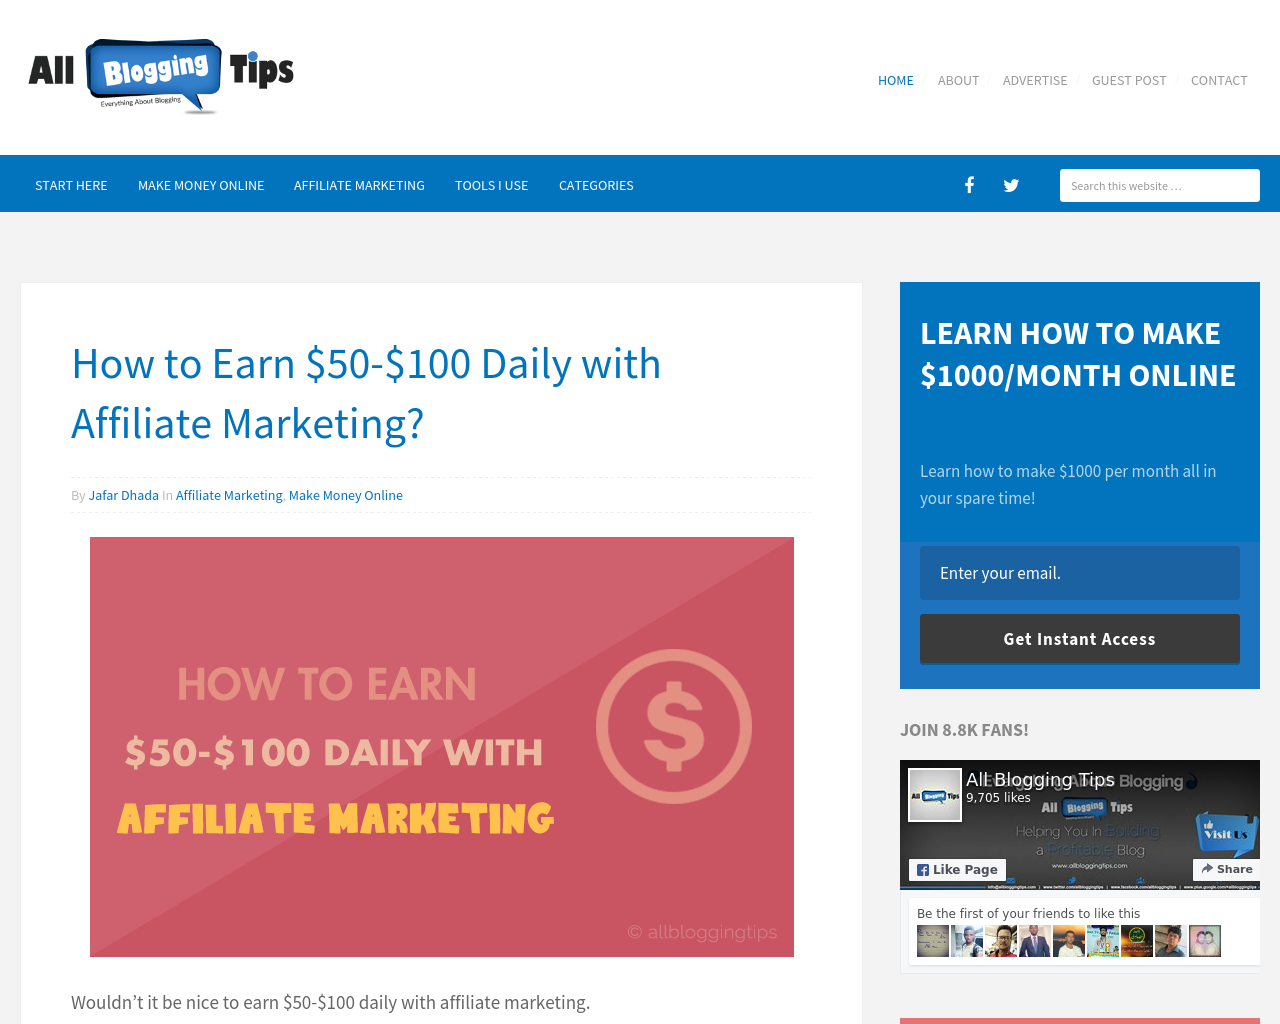 All-Blogging-Tips-Advertising-Reviews-Pricing